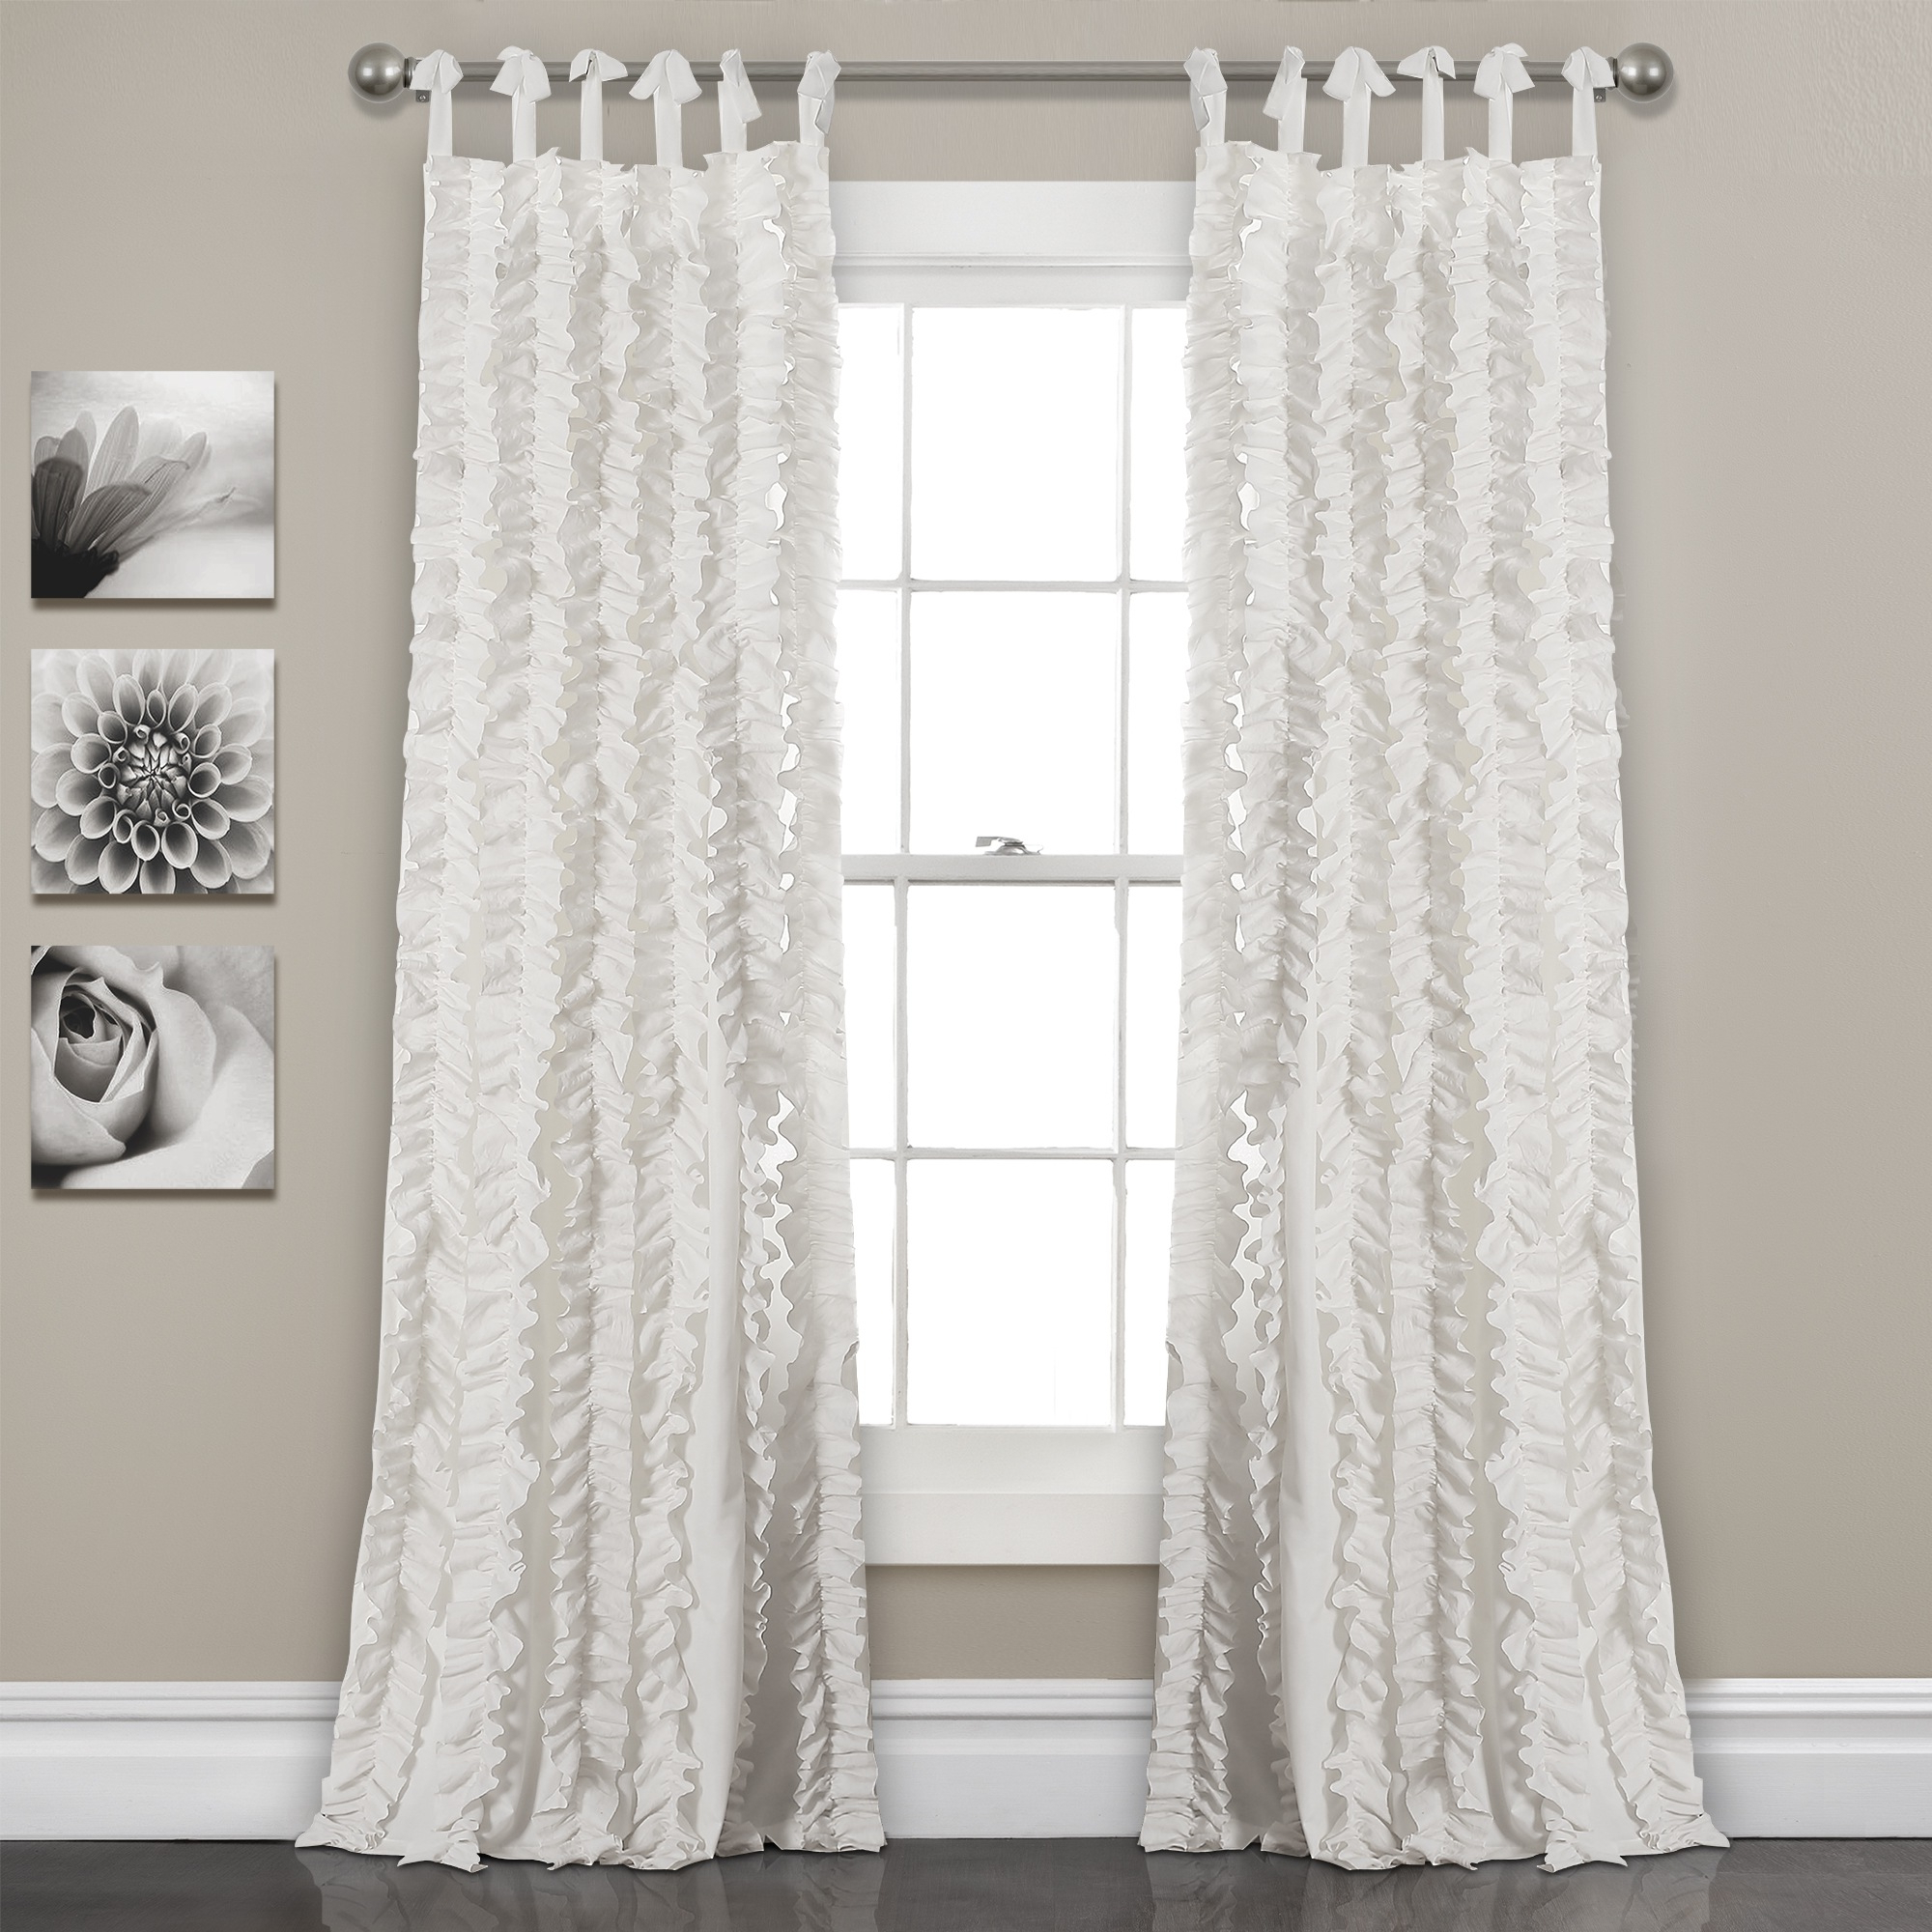 Lydia Ruffle Window Curtain Panel Pairs With Regard To Fashionable White 84'x40' Sophia Ruffle Window Curtain Set (View 19 of 20)